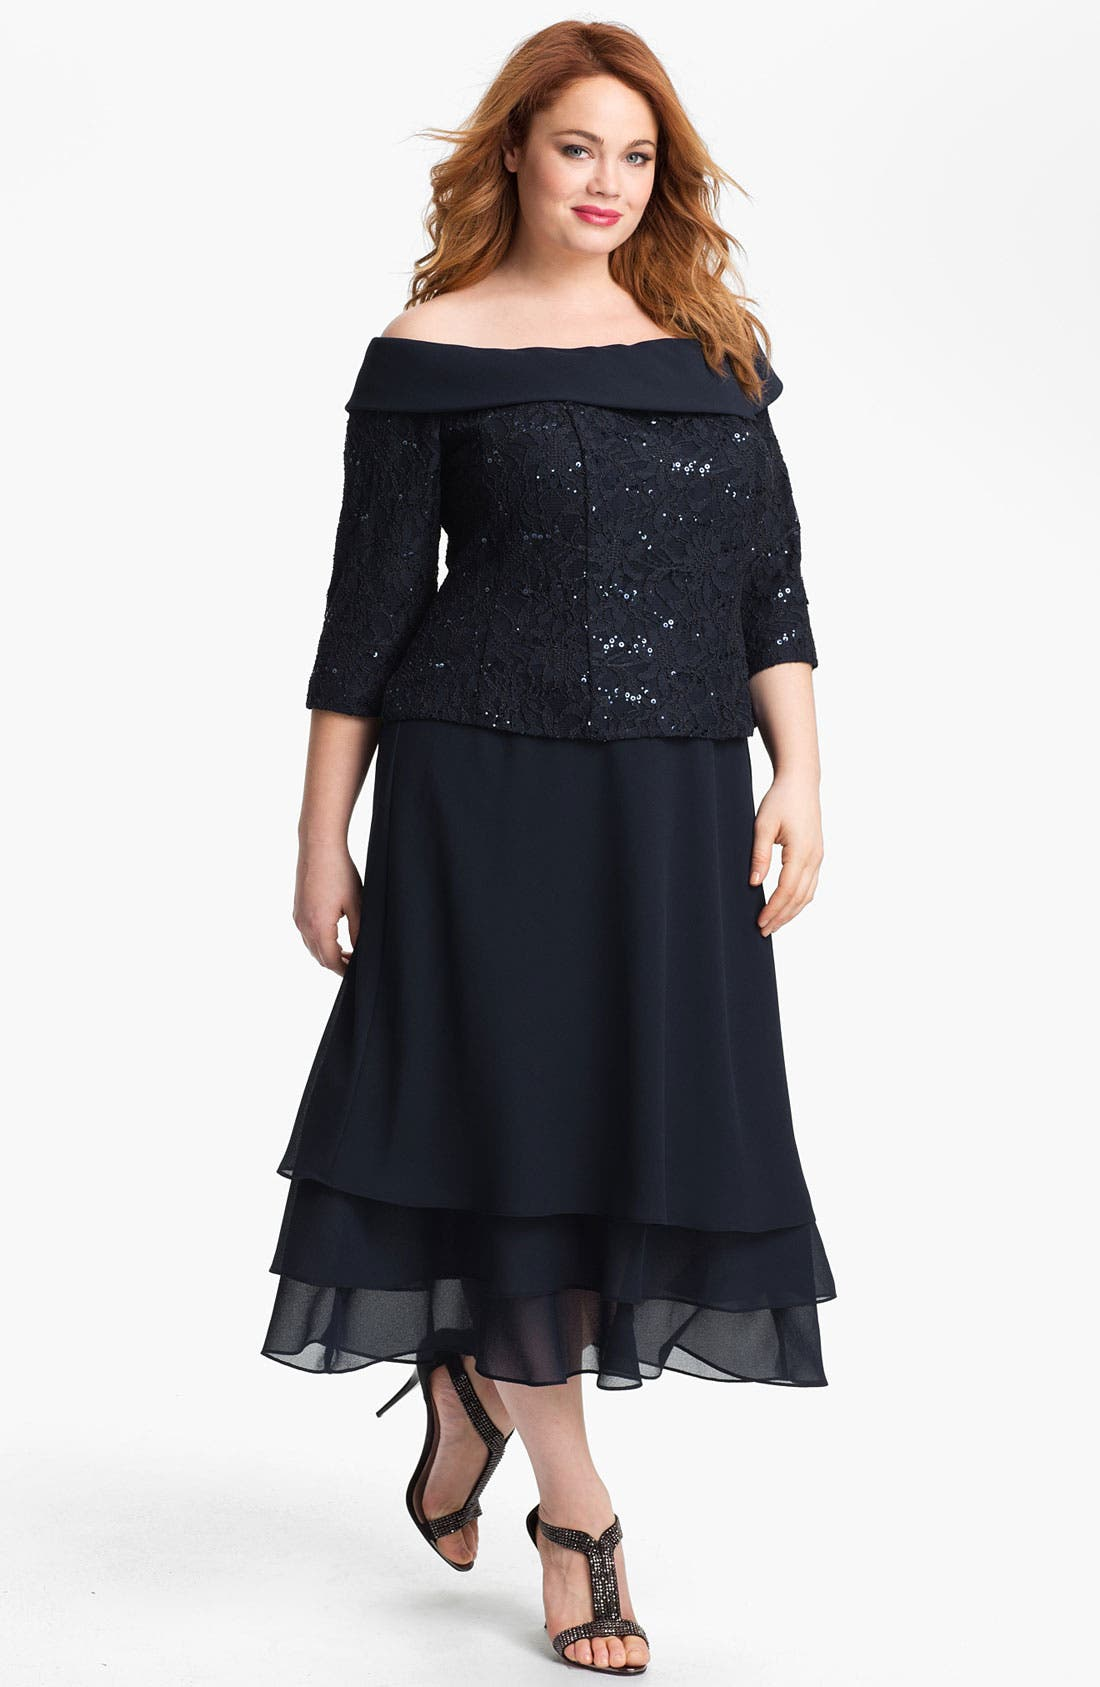 Alternate Image 1 Selected - Alex Evenings Sequin Lace Top & Tiered Skirt (Plus)